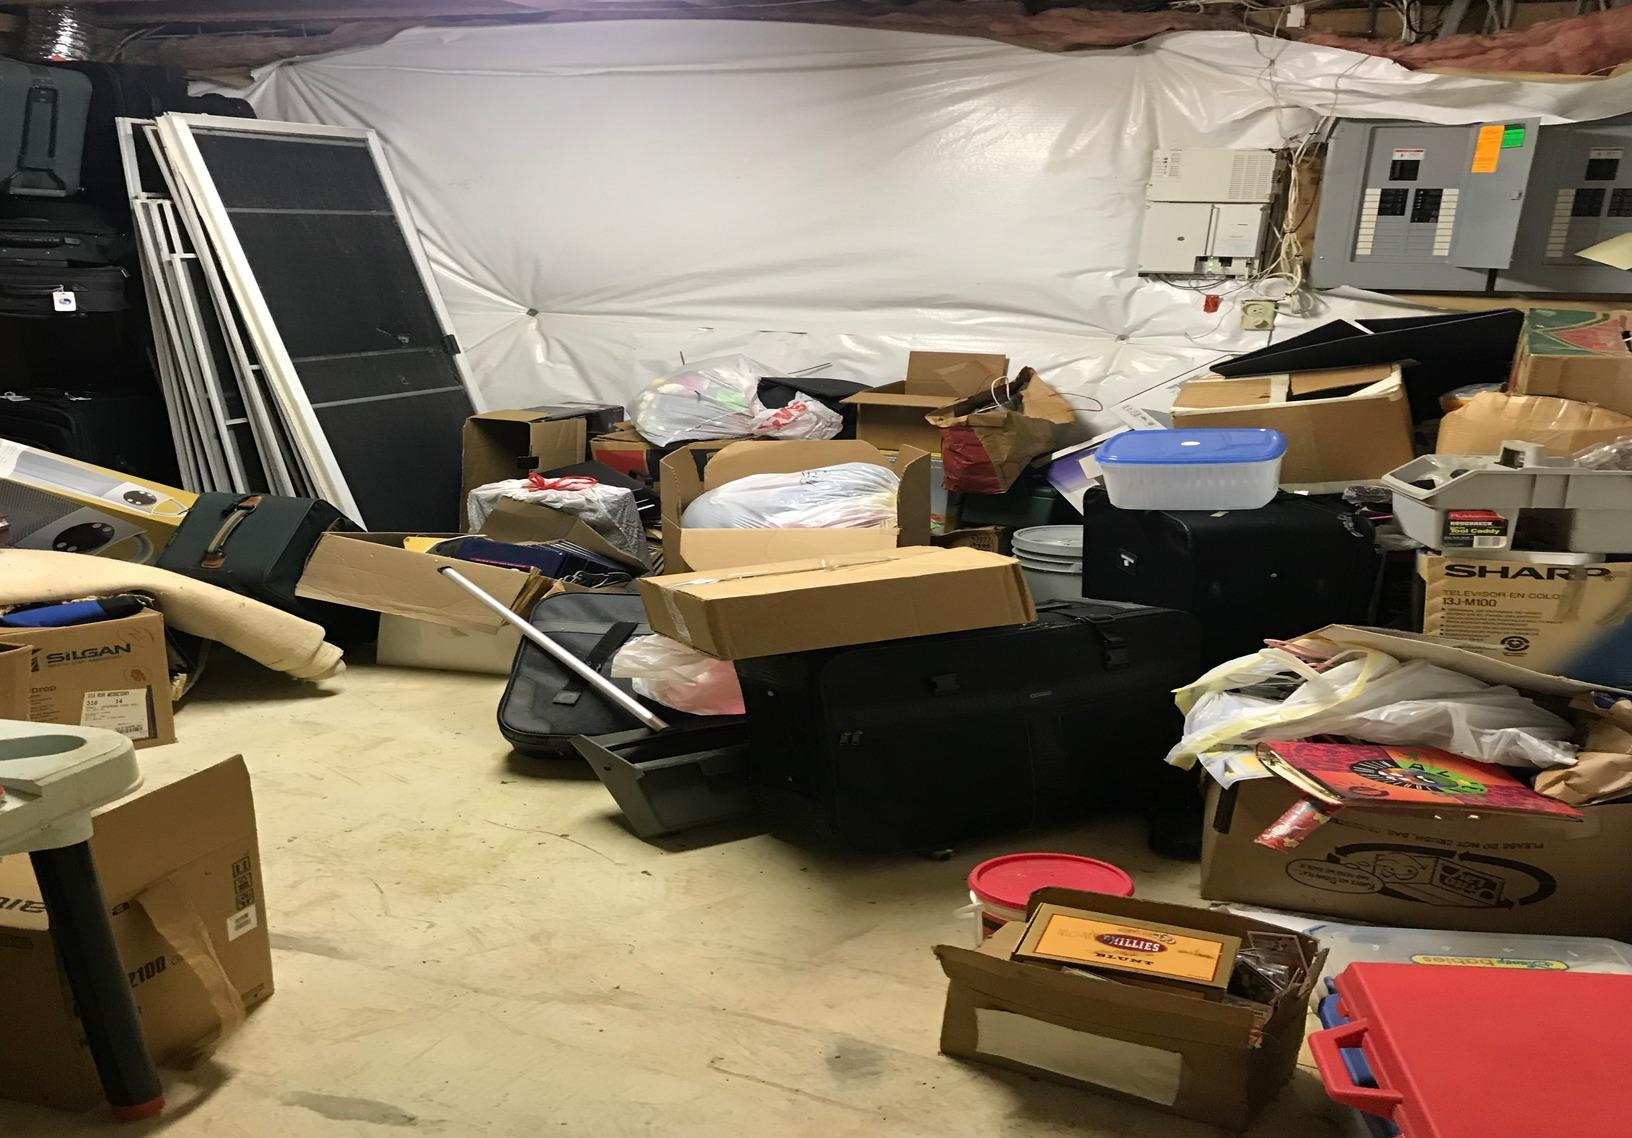 Basement clean out, Ellicott City MD. - Before Photo